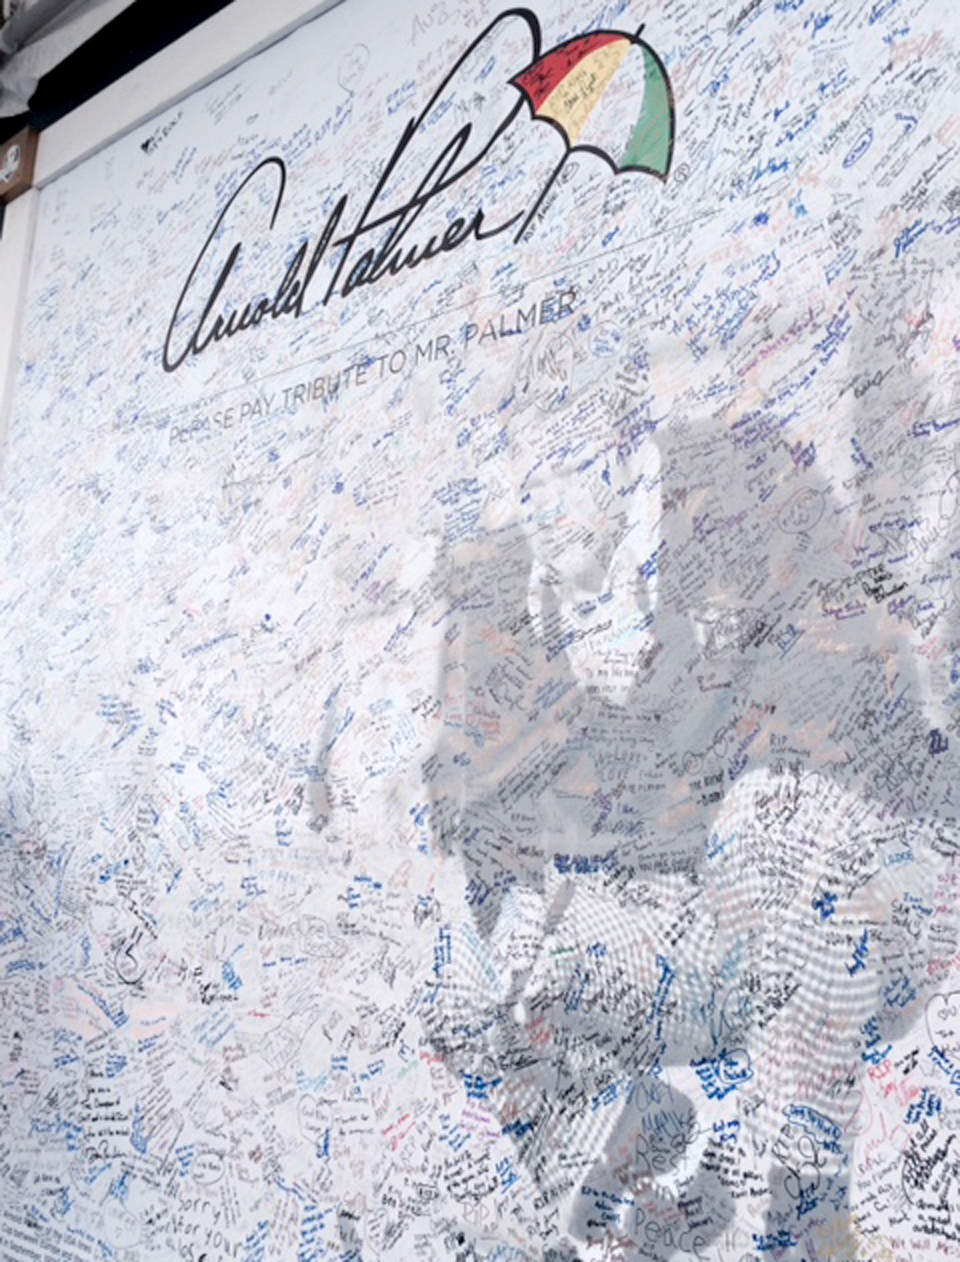 One of the posters is already full of signatures from Ryder Cup fans.